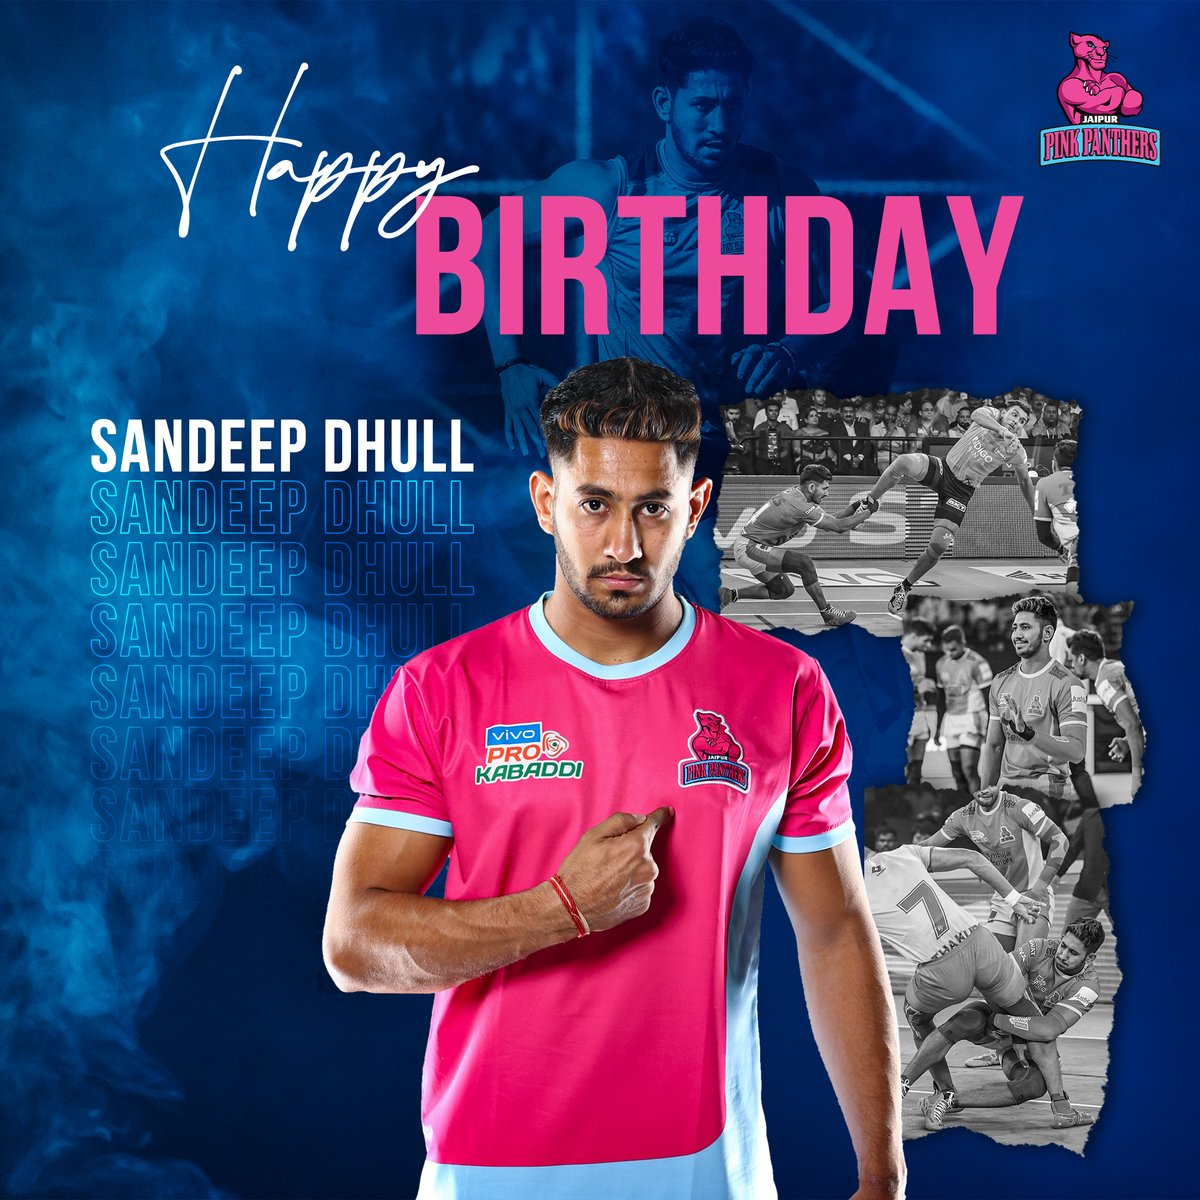 On your birthday we wish for you that whatever you want most in life it comes to you just the way you imagined it or better. Happy birthday @Sandeep_Dhull_4 🎂🥳  #PantherSquad #JaiHanuman #TopCats #JaipurPinkPanthers #JPP #Jaipur #vivoprokabaddi